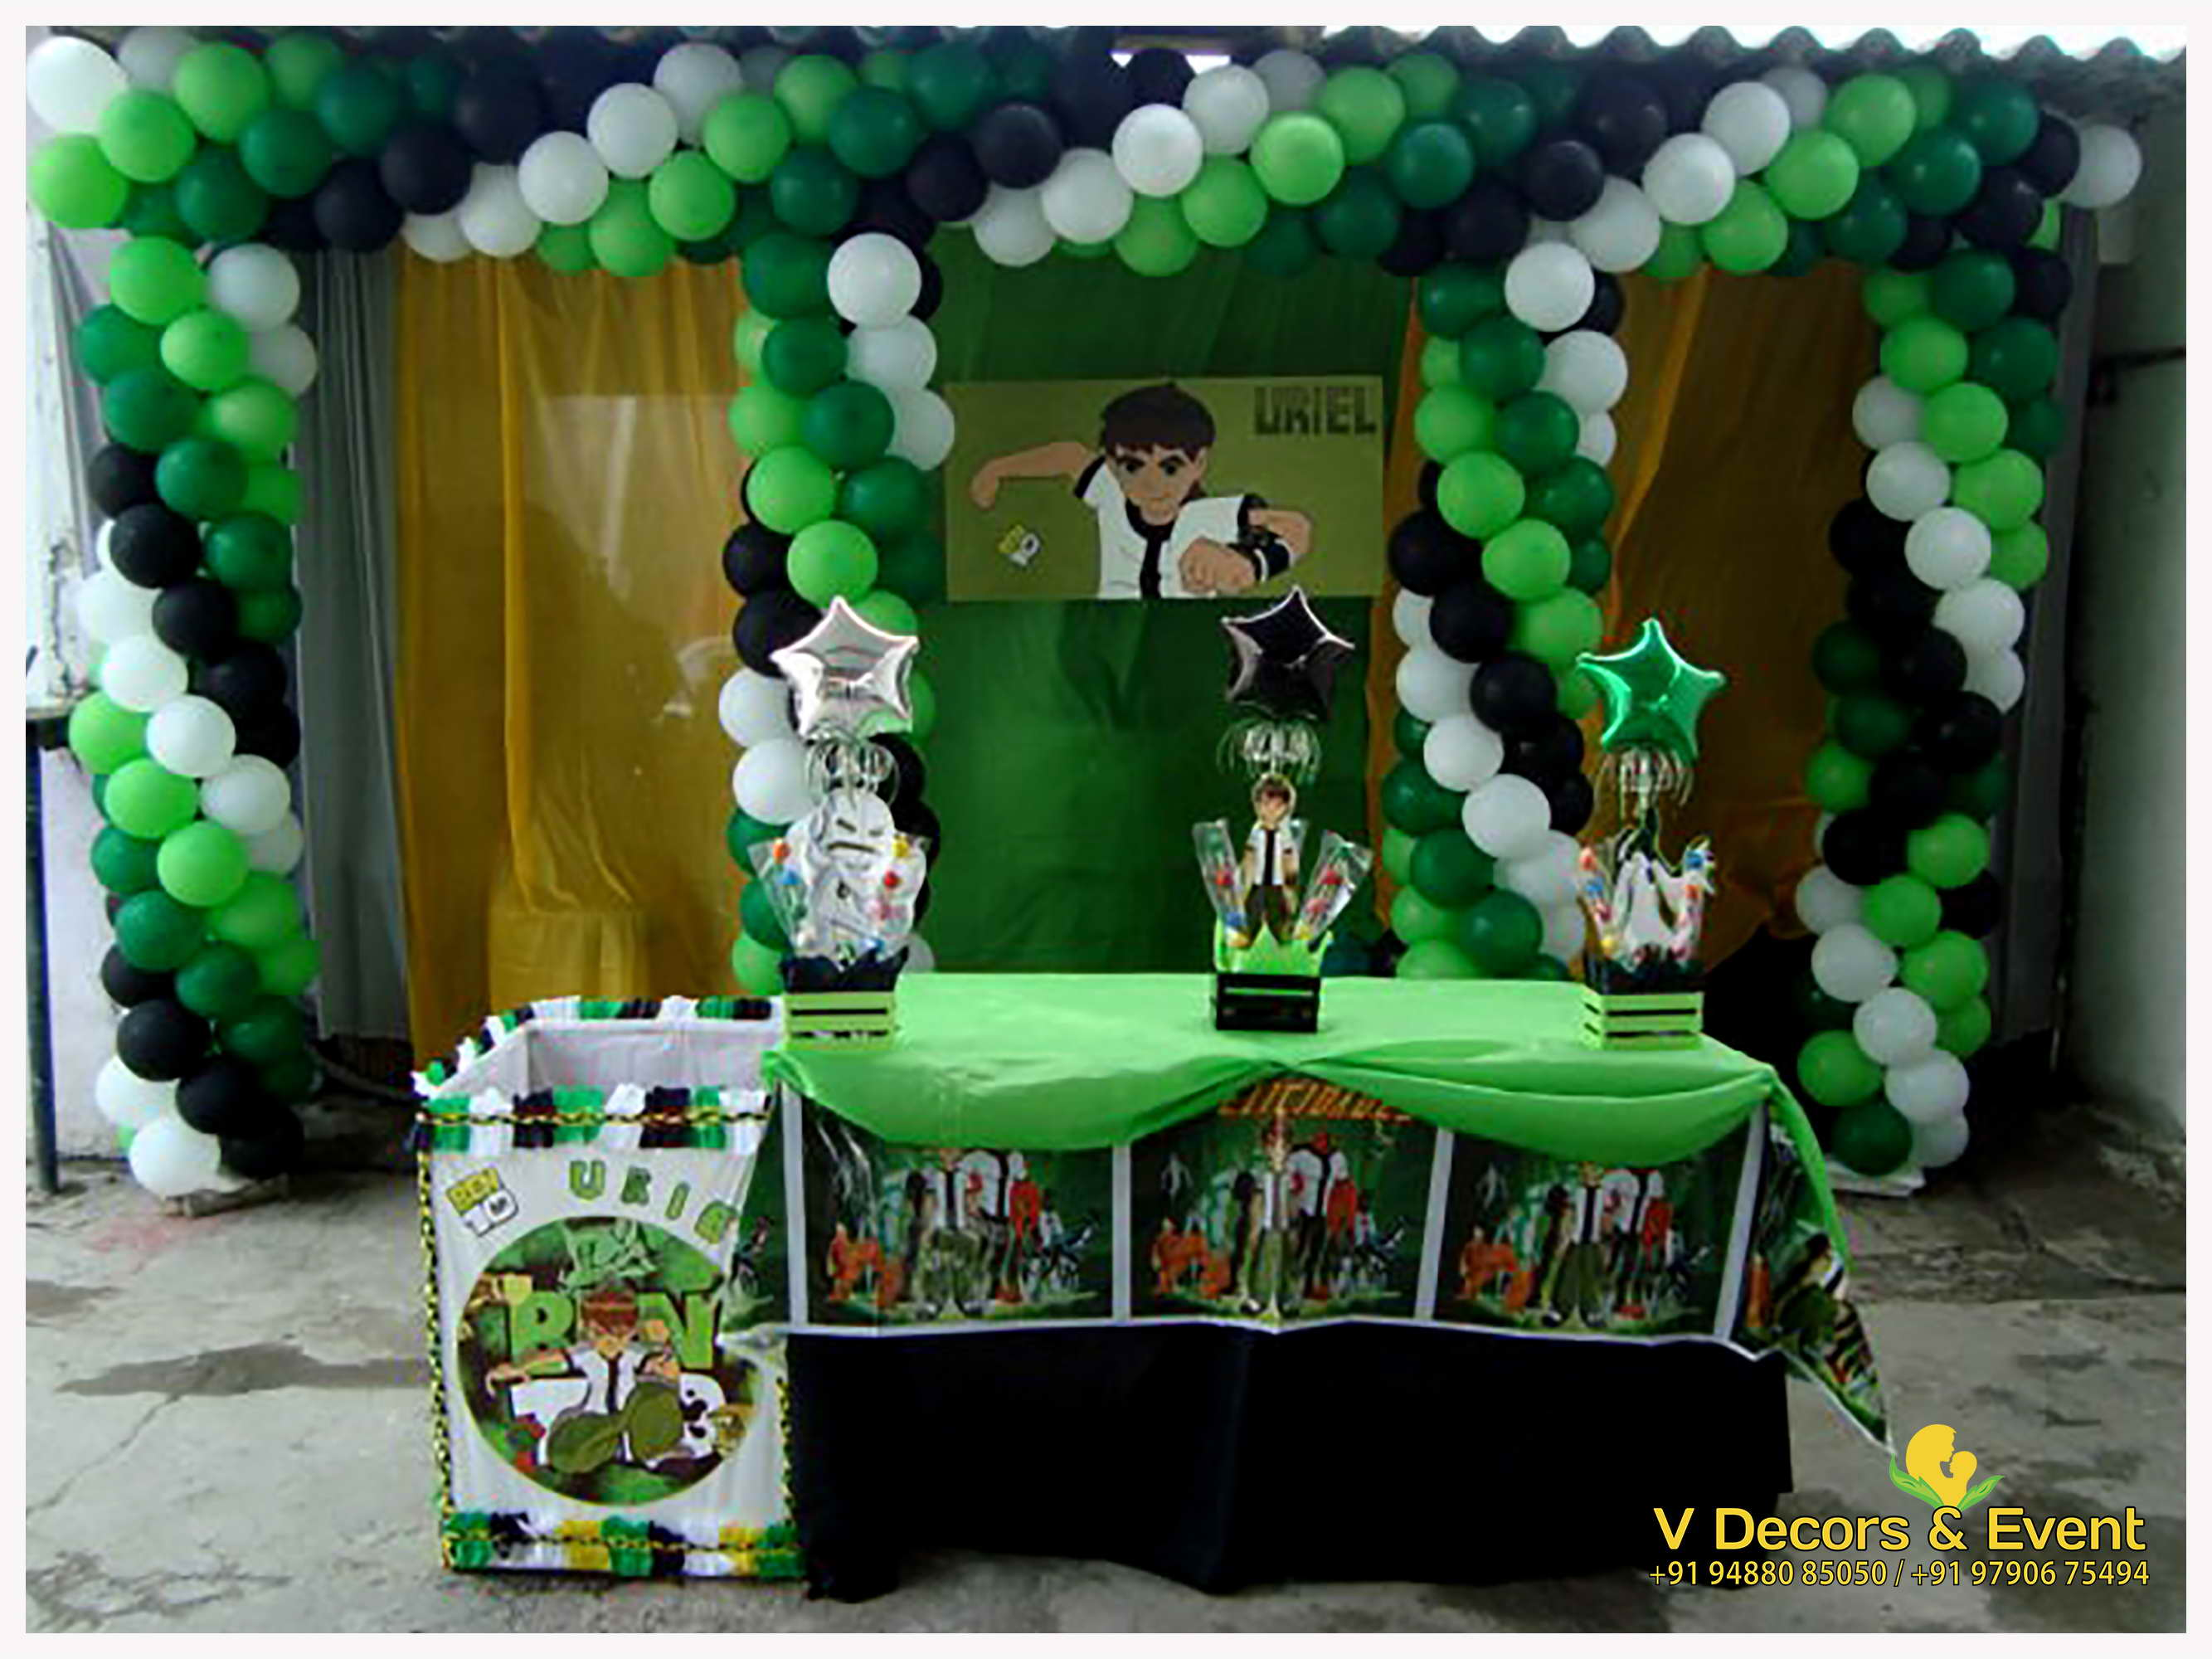 Ben 10 Party Decorations Pictures  from www.vdecorsandevent.com